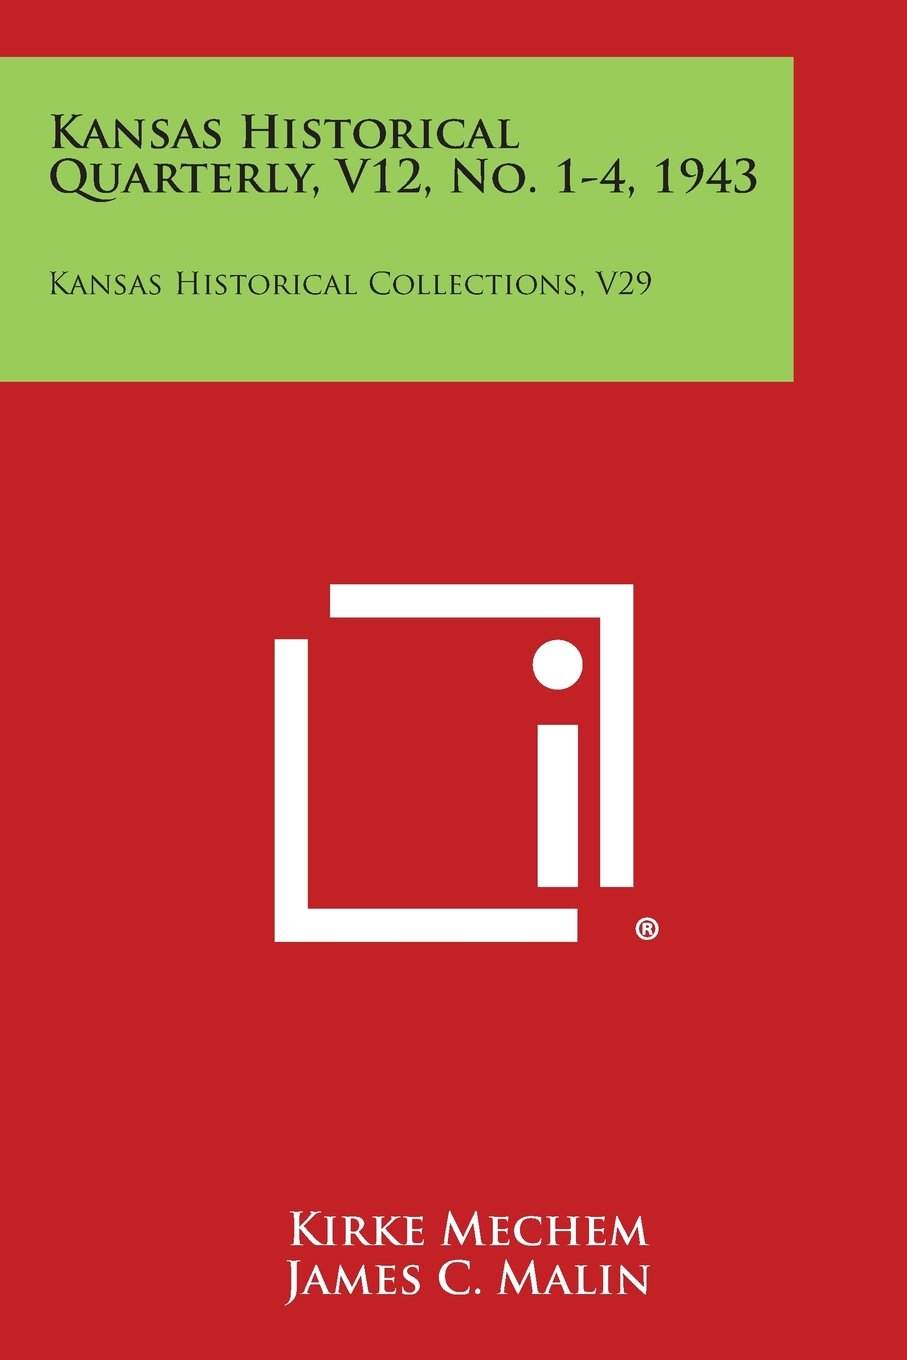 Kansas Historical Quarterly, V12, No. 1-4, 1943: Kansas Historical Collections, V29 ebook